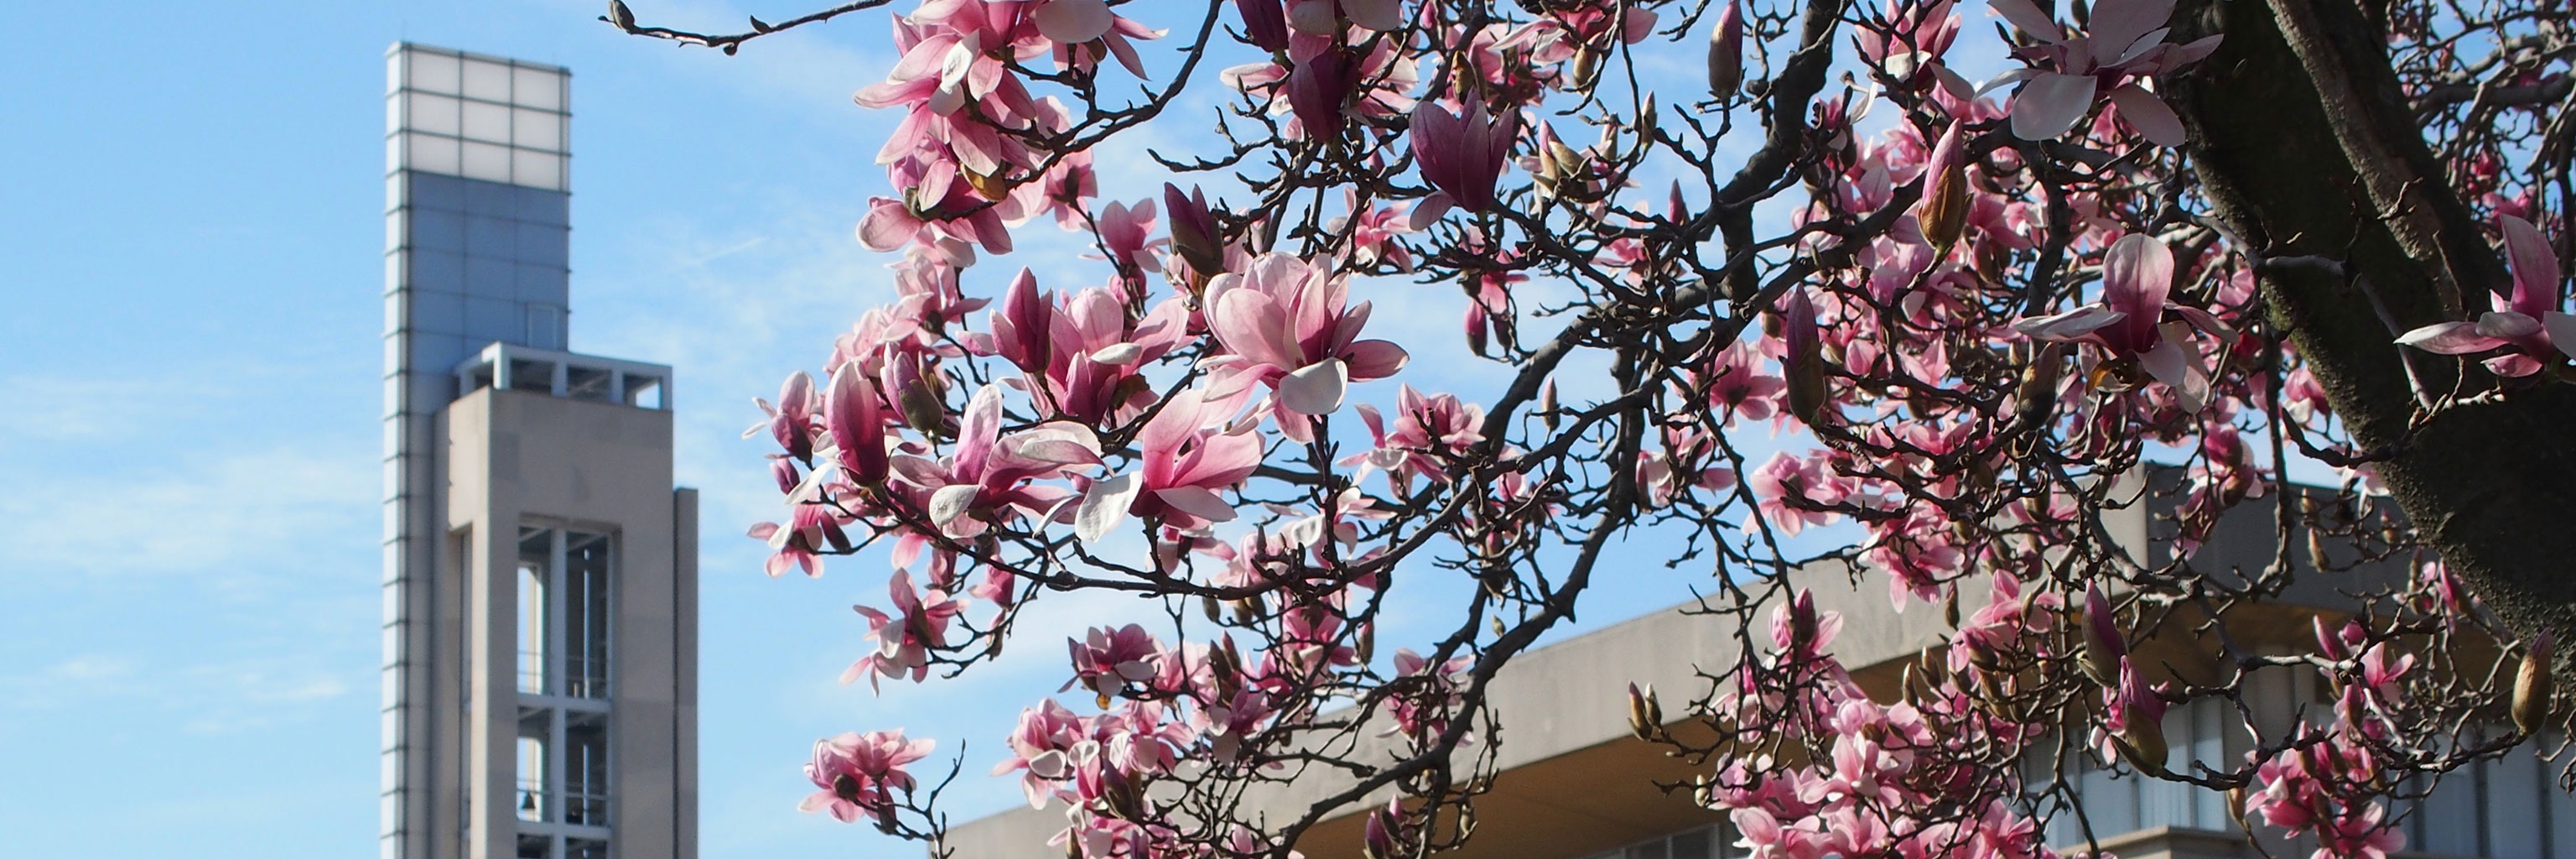 A tree flowering in spring in front of the bell tower